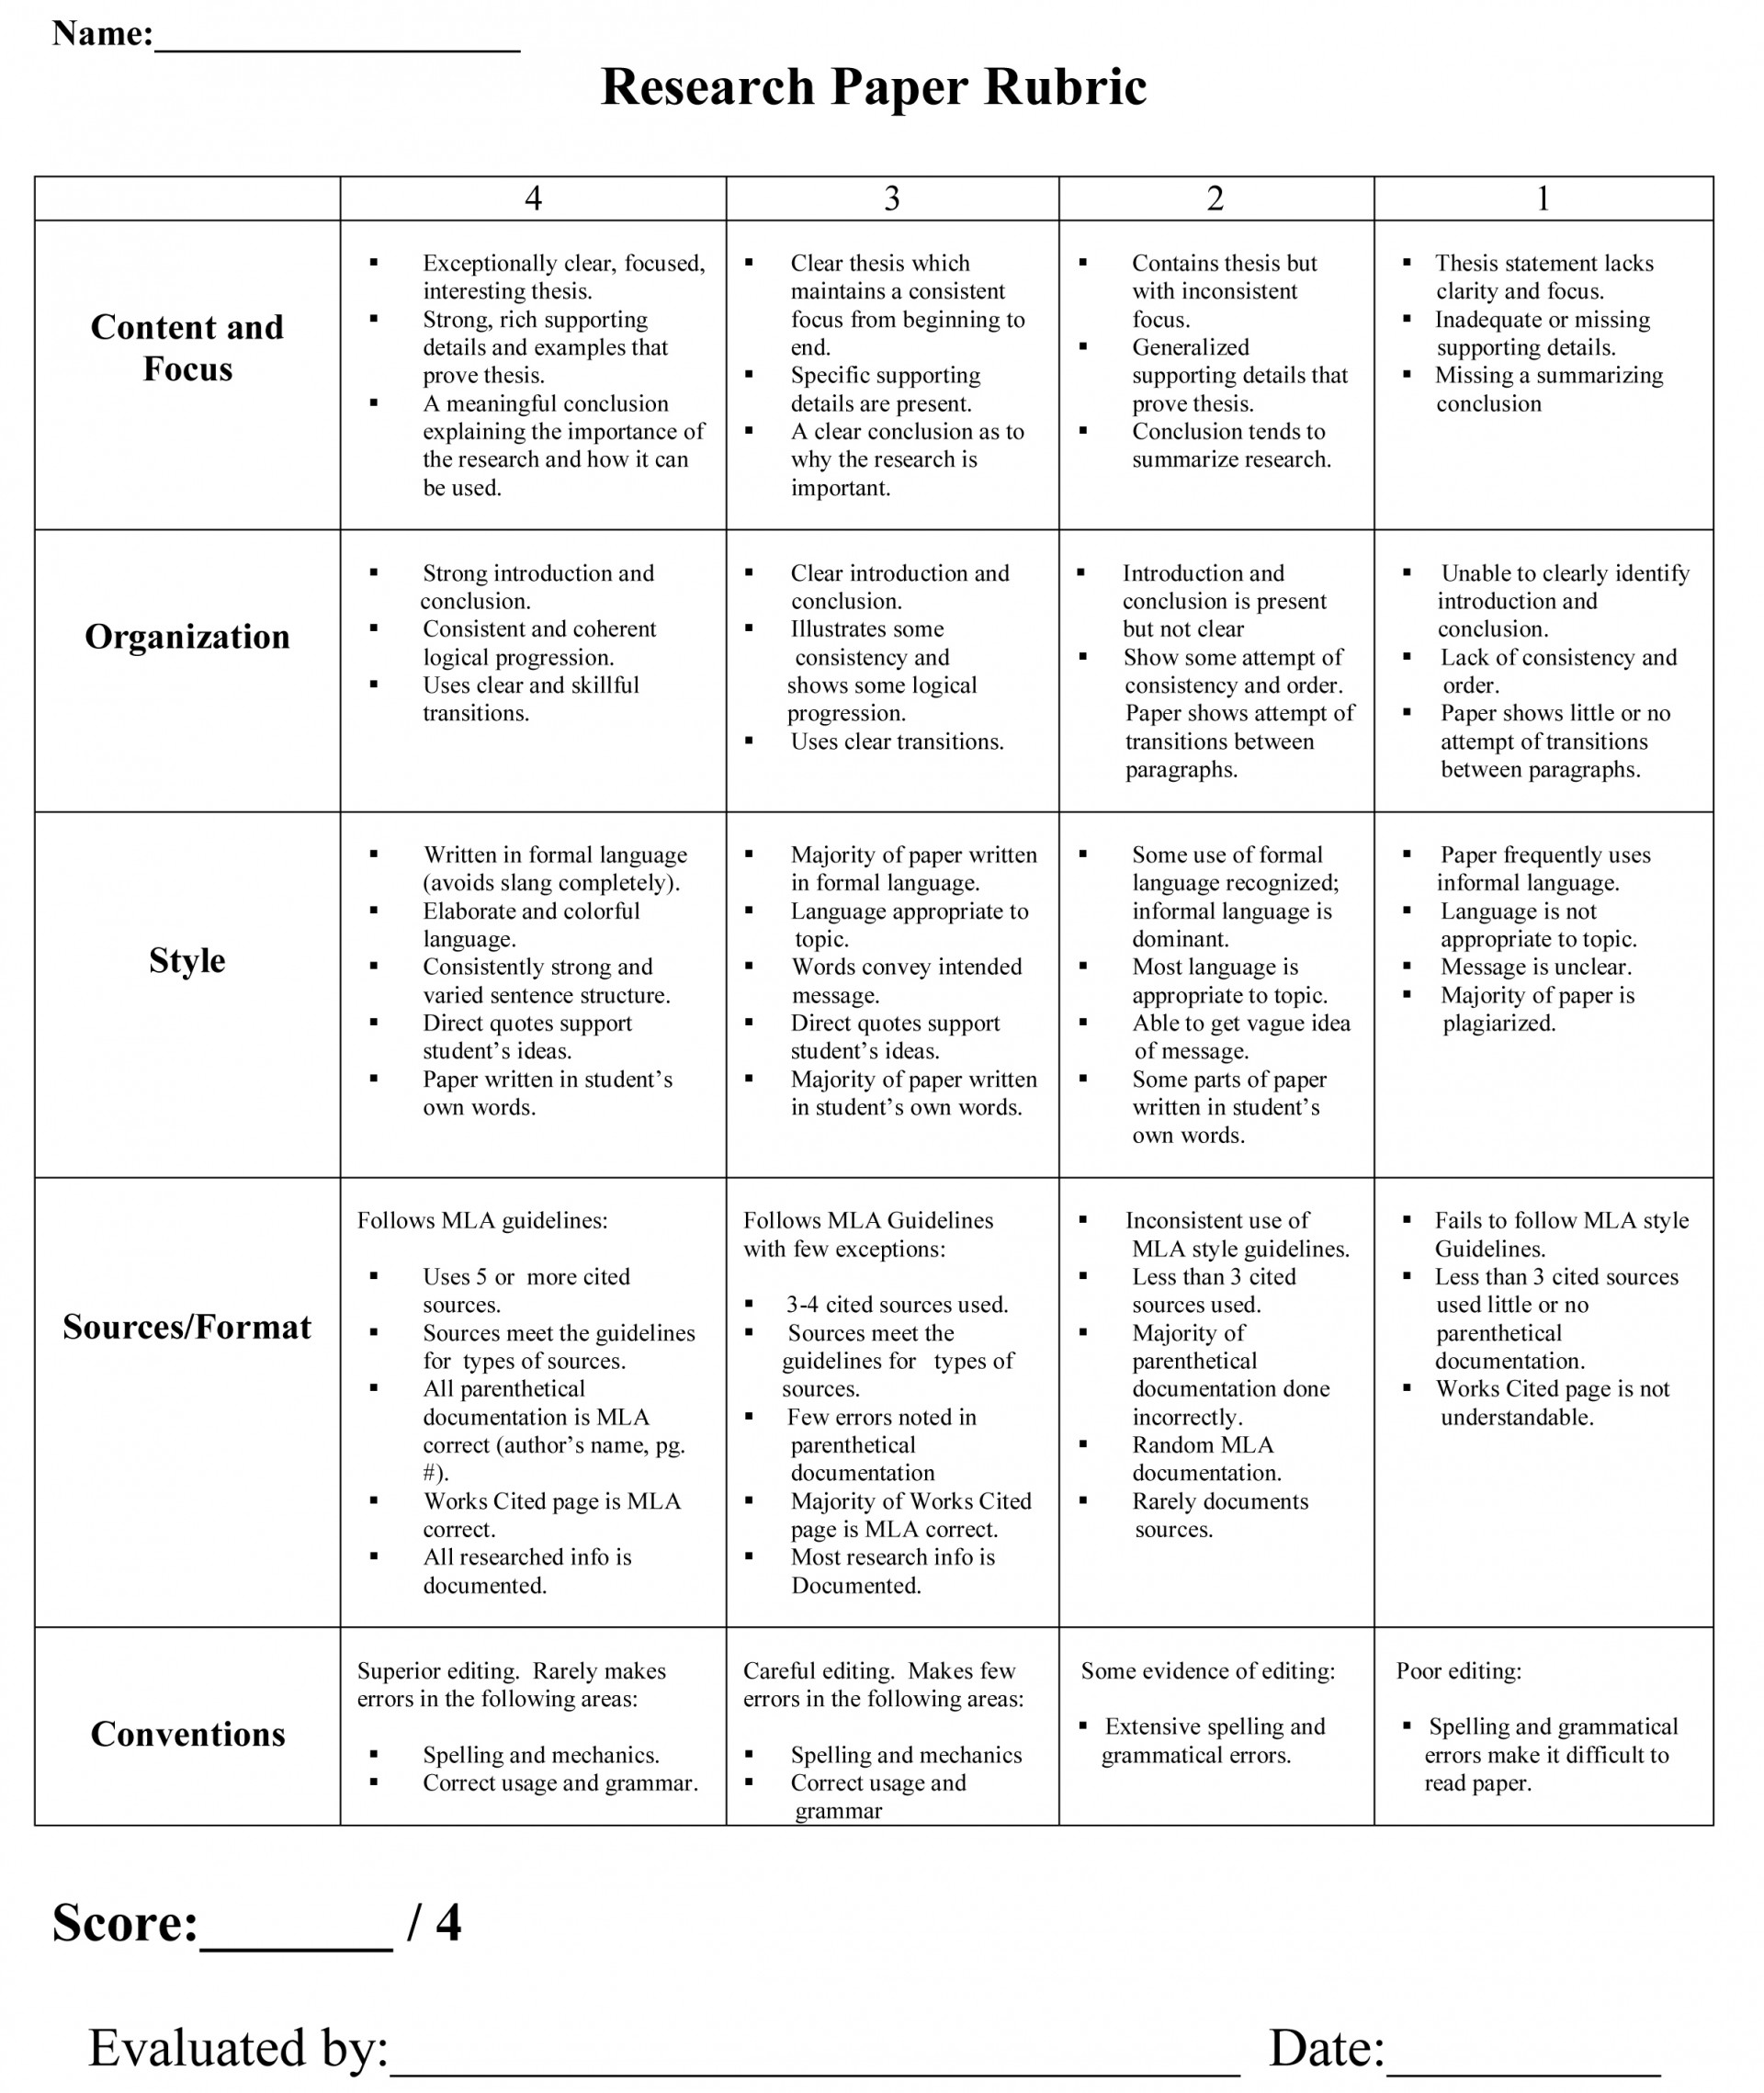 017 Research Paper Rubric Free Sample Online Stirring Papers Plagiarism Checker Psychology Download 1920